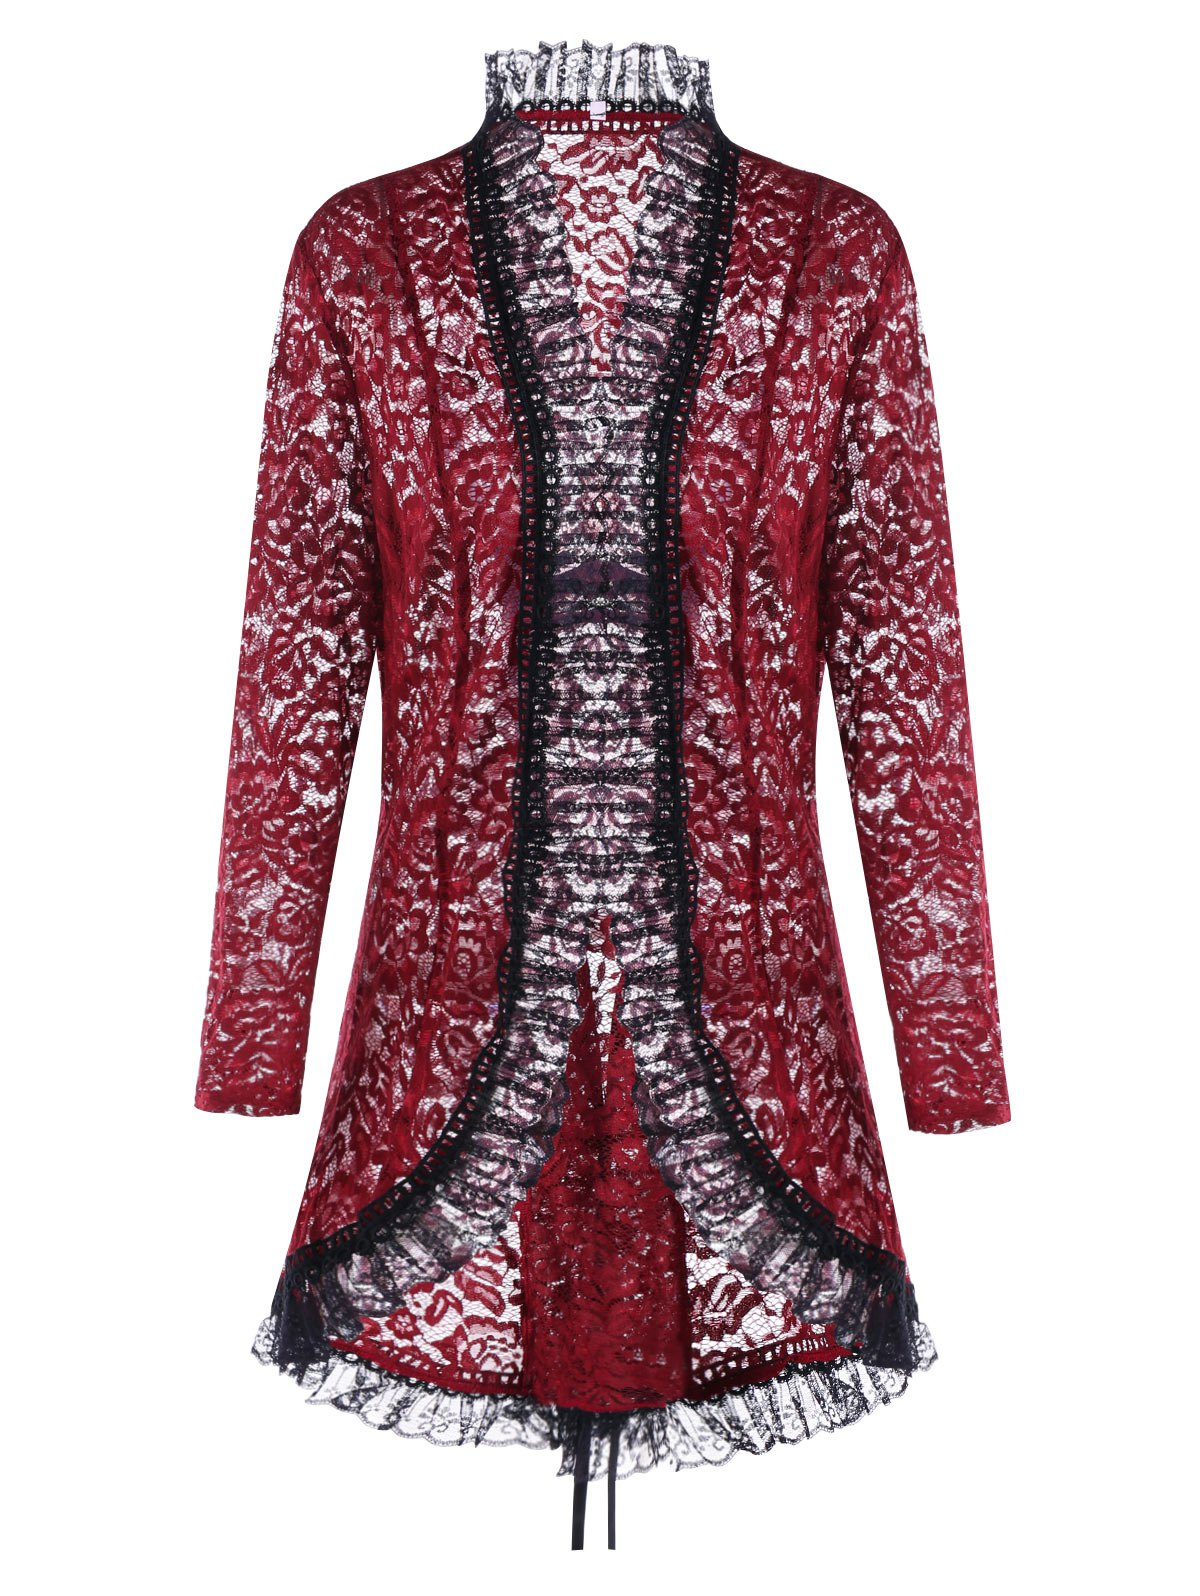 Lace Up Plus Size Gothic Lace Cardigan - WINE RED 5XL